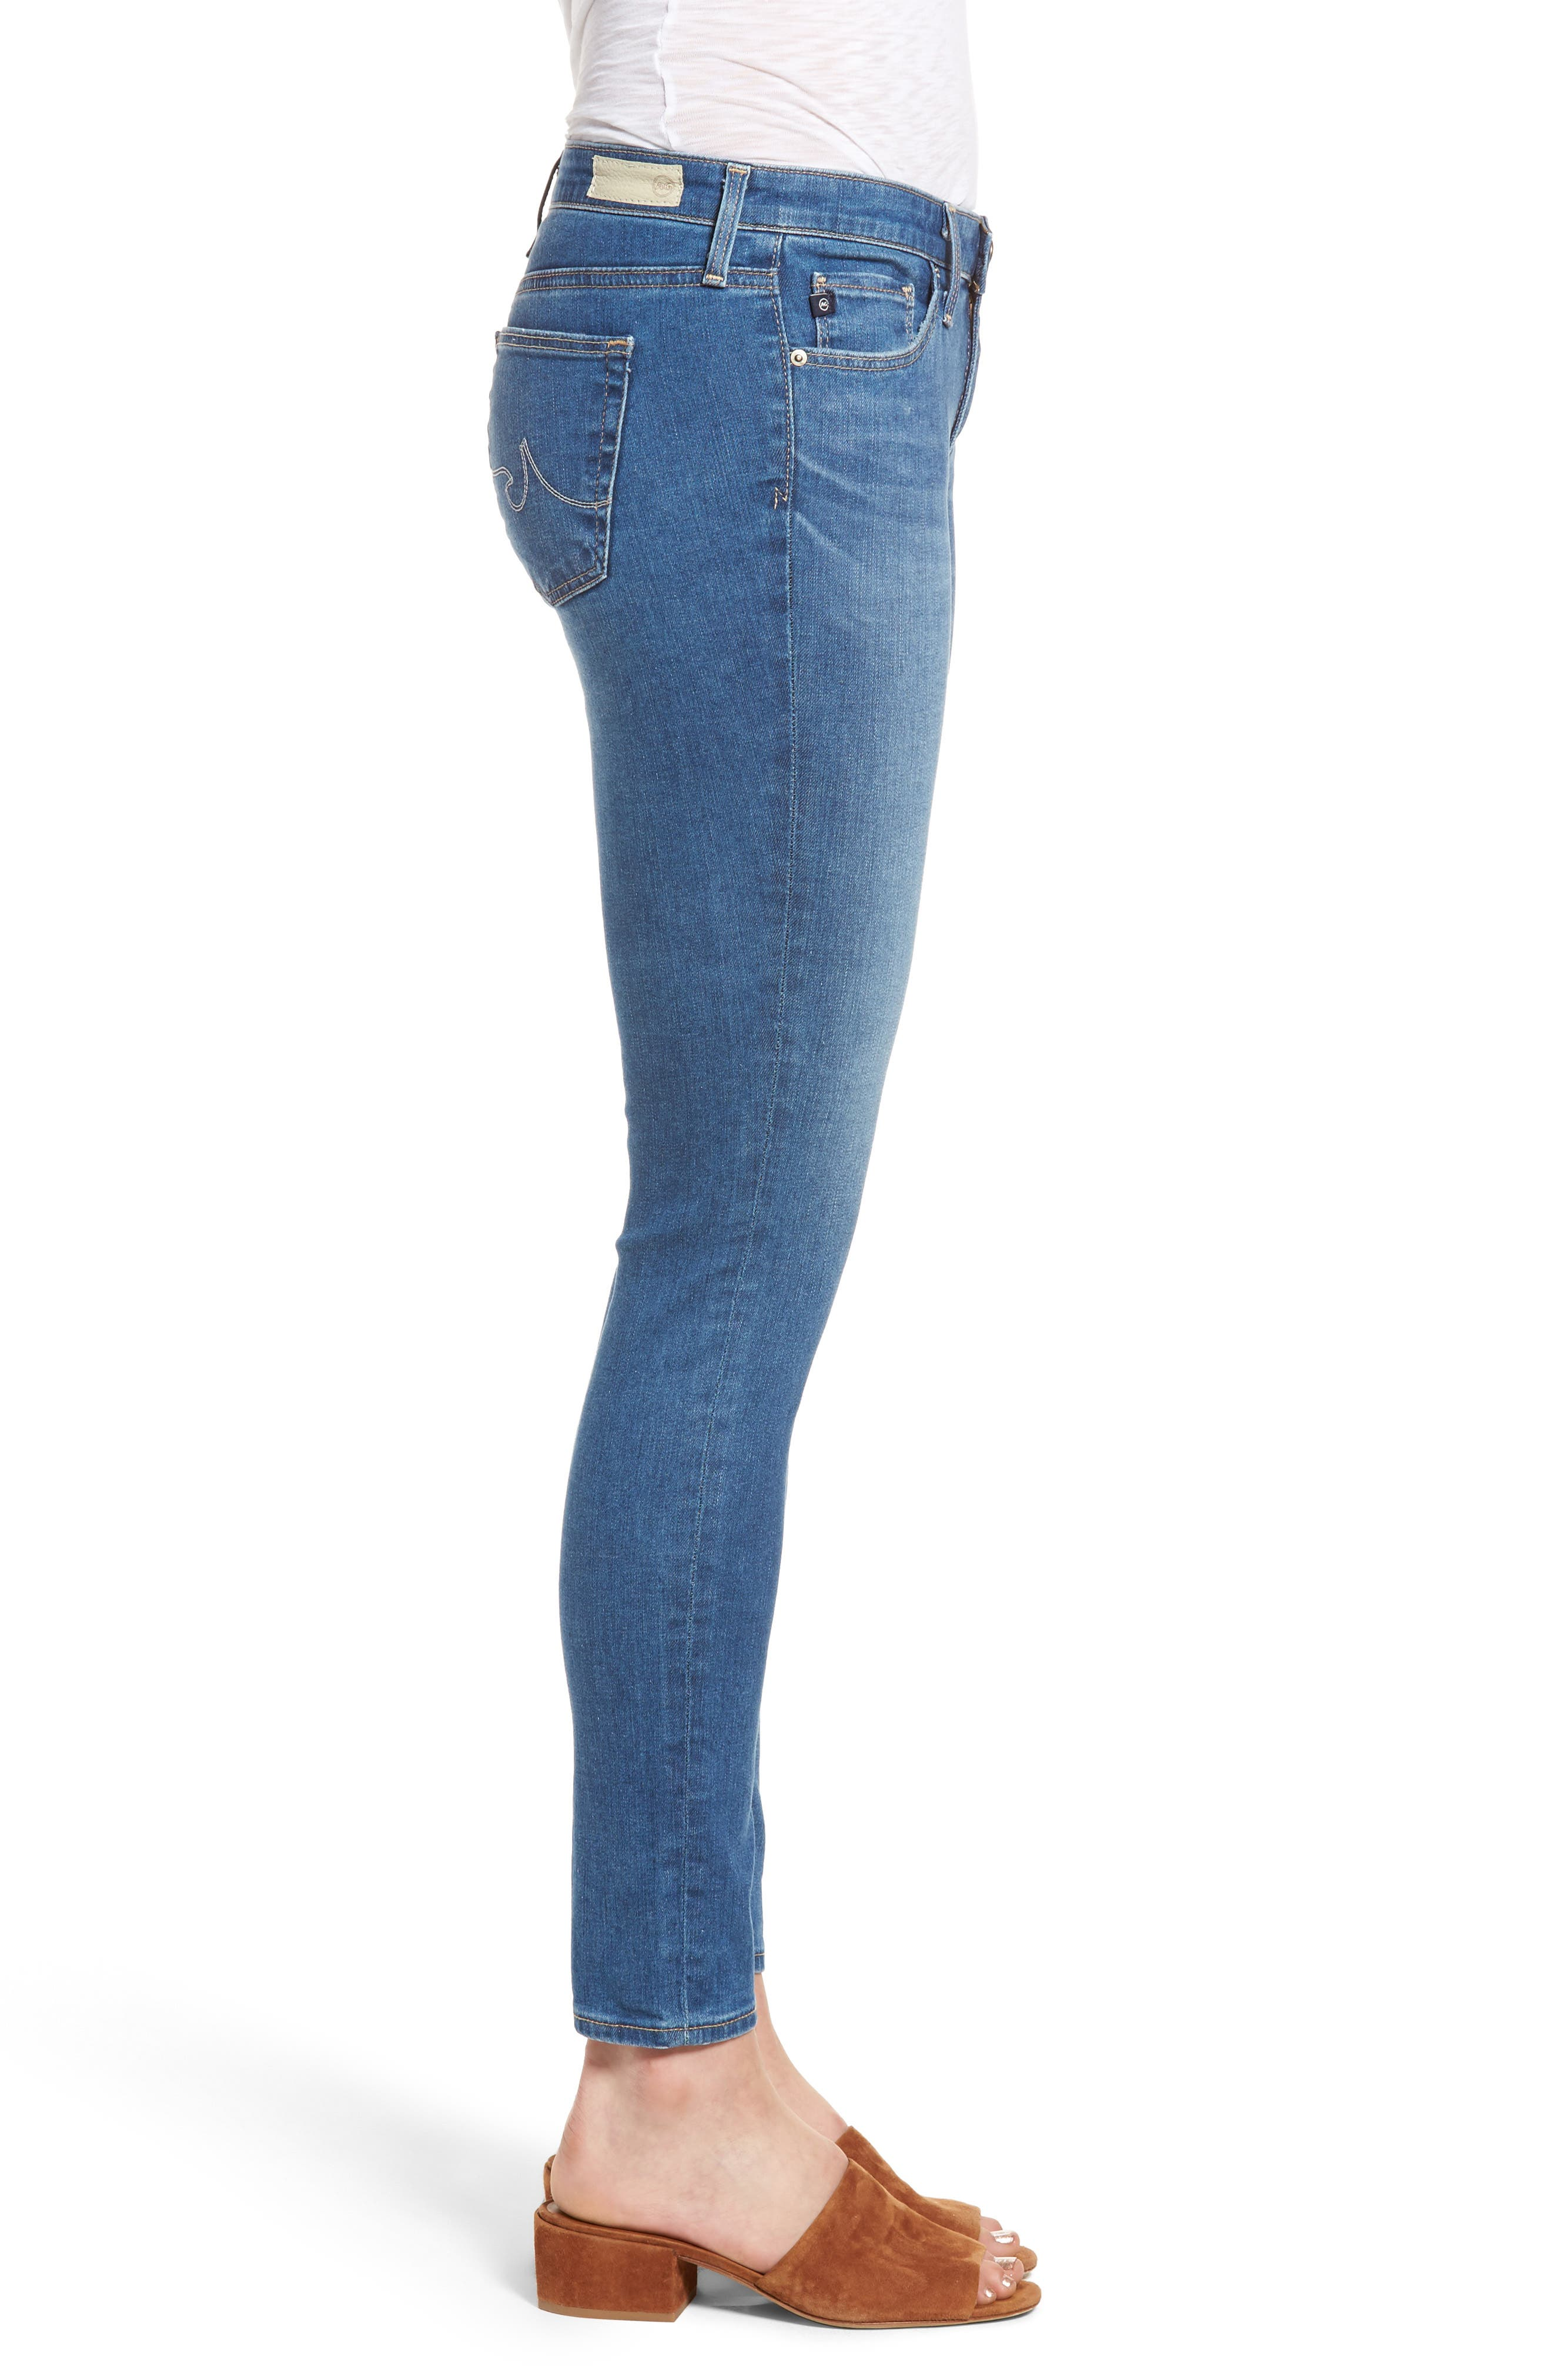 Alternate Image 3  - AG The Legging Ankle Jeans (Emanate)